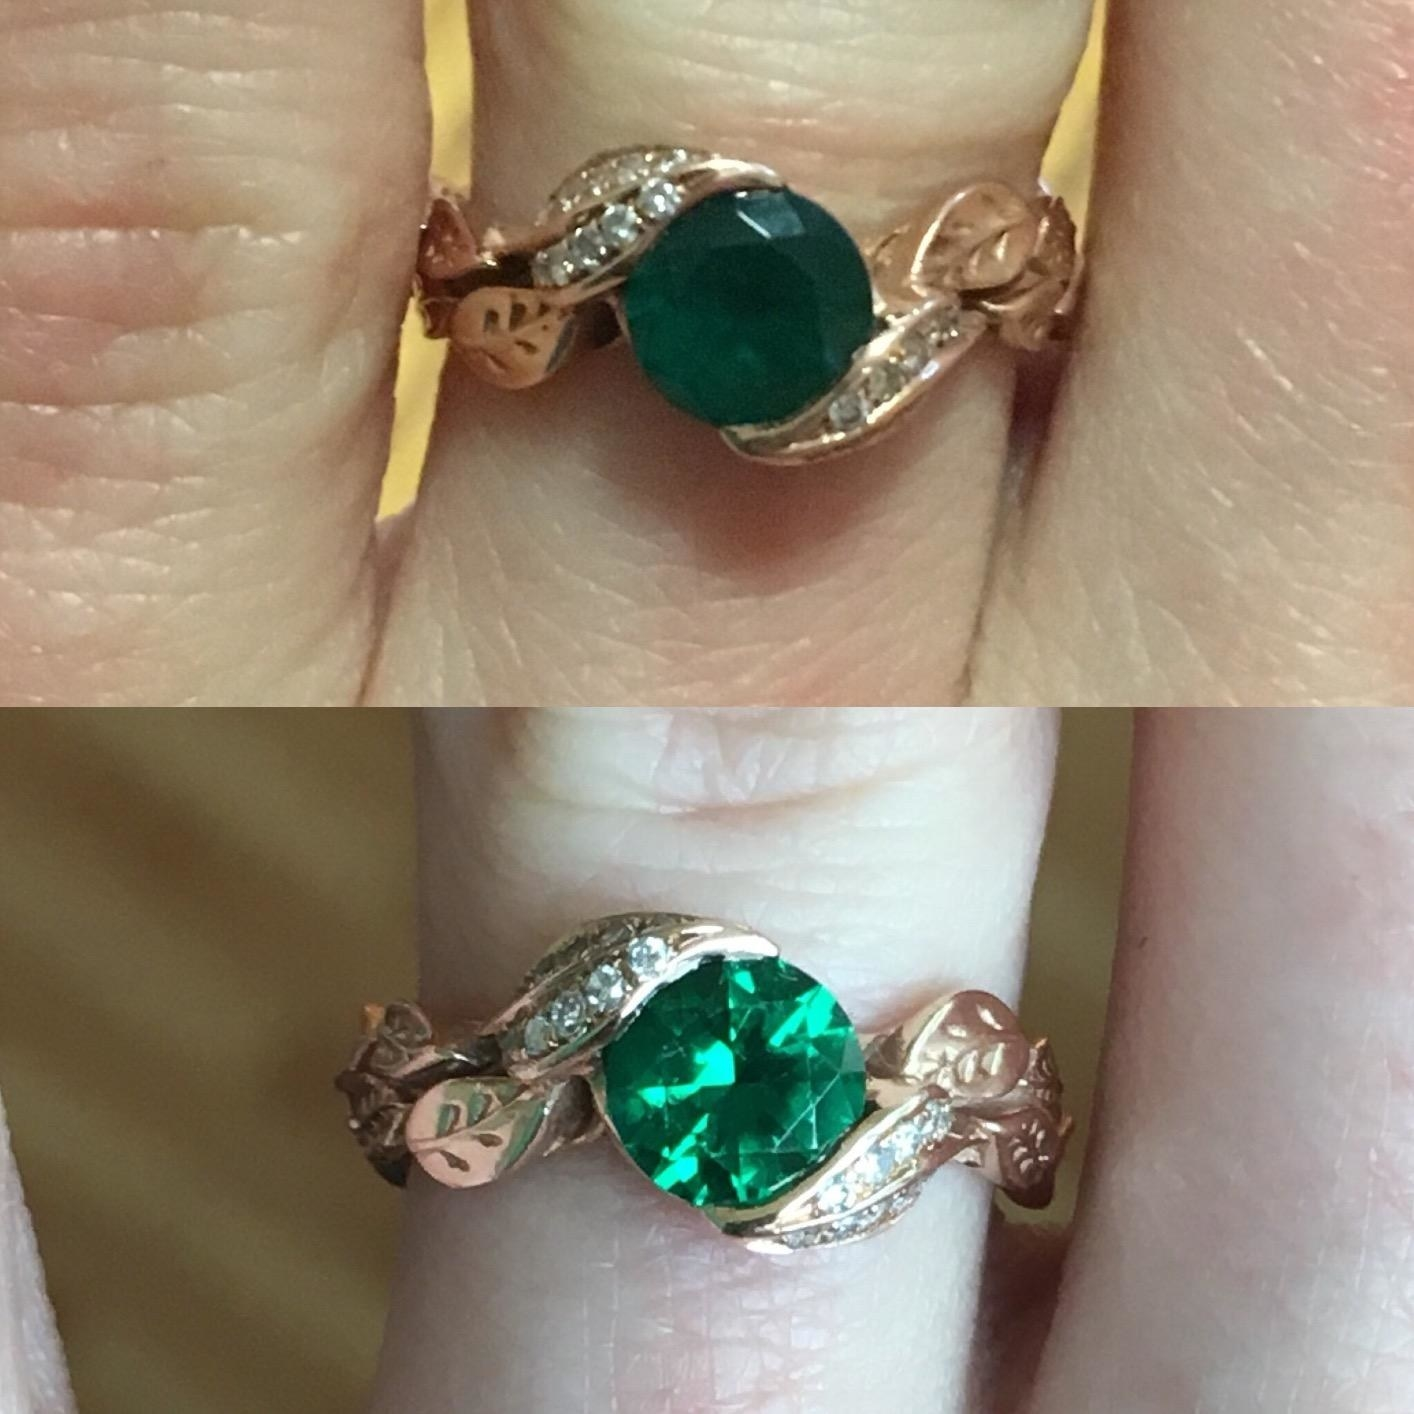 Reviewer showing before and after of a dulled ring made shiny again